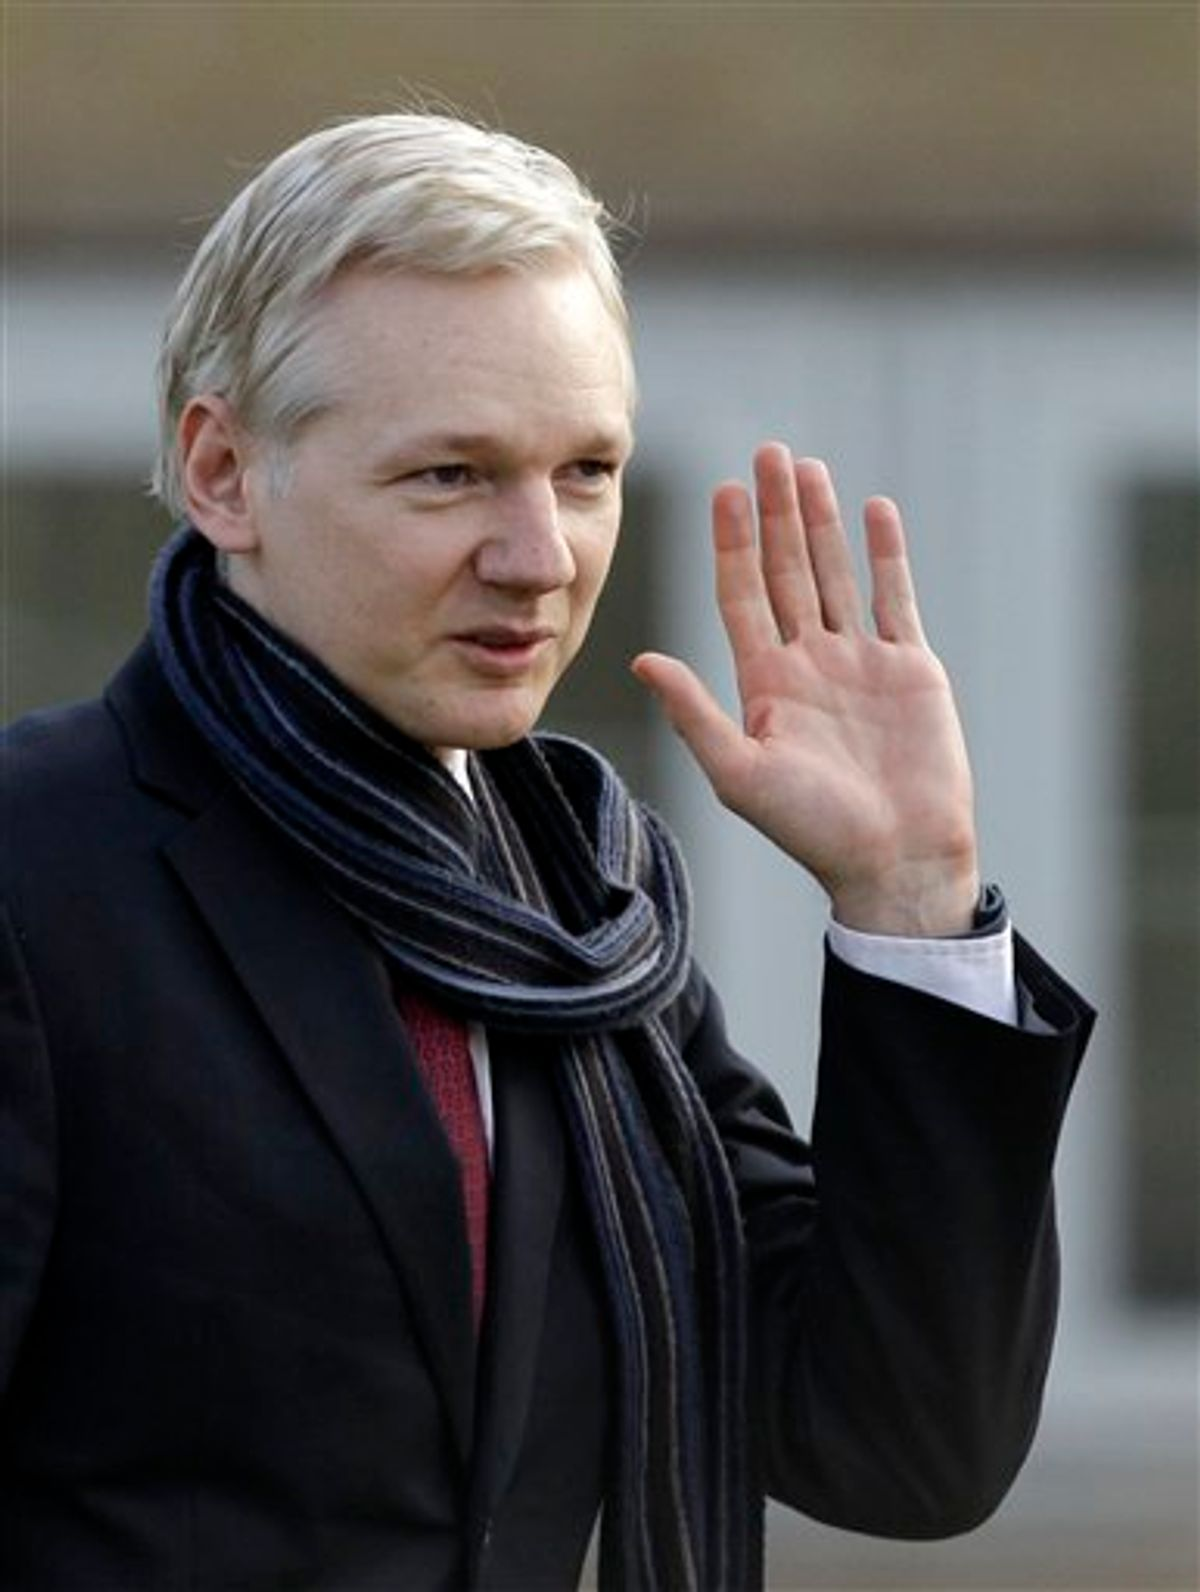 The founder of WikiLeaks Julian Assange waves as he leaves after speaking to the media after his extradition hearing at Belmarsh Magistrates' Court in London, Thursday, Feb. 24, 2011.  Julian Assange can be extradited to Sweden in a sex crimes inquiry, a British judge ruled Thursday, rejecting claims by the WikiLeaks founder that he would not face a fair trial there. Assange's lawyer said he would appeal.  Judge Howard Riddle said the allegations of rape and sexual molestation by two women against Assange meet the definition of extraditable offenses and said the Swedish warrant had been properly issued and was valid.  (AP Photo/Matt Dunham) (AP)